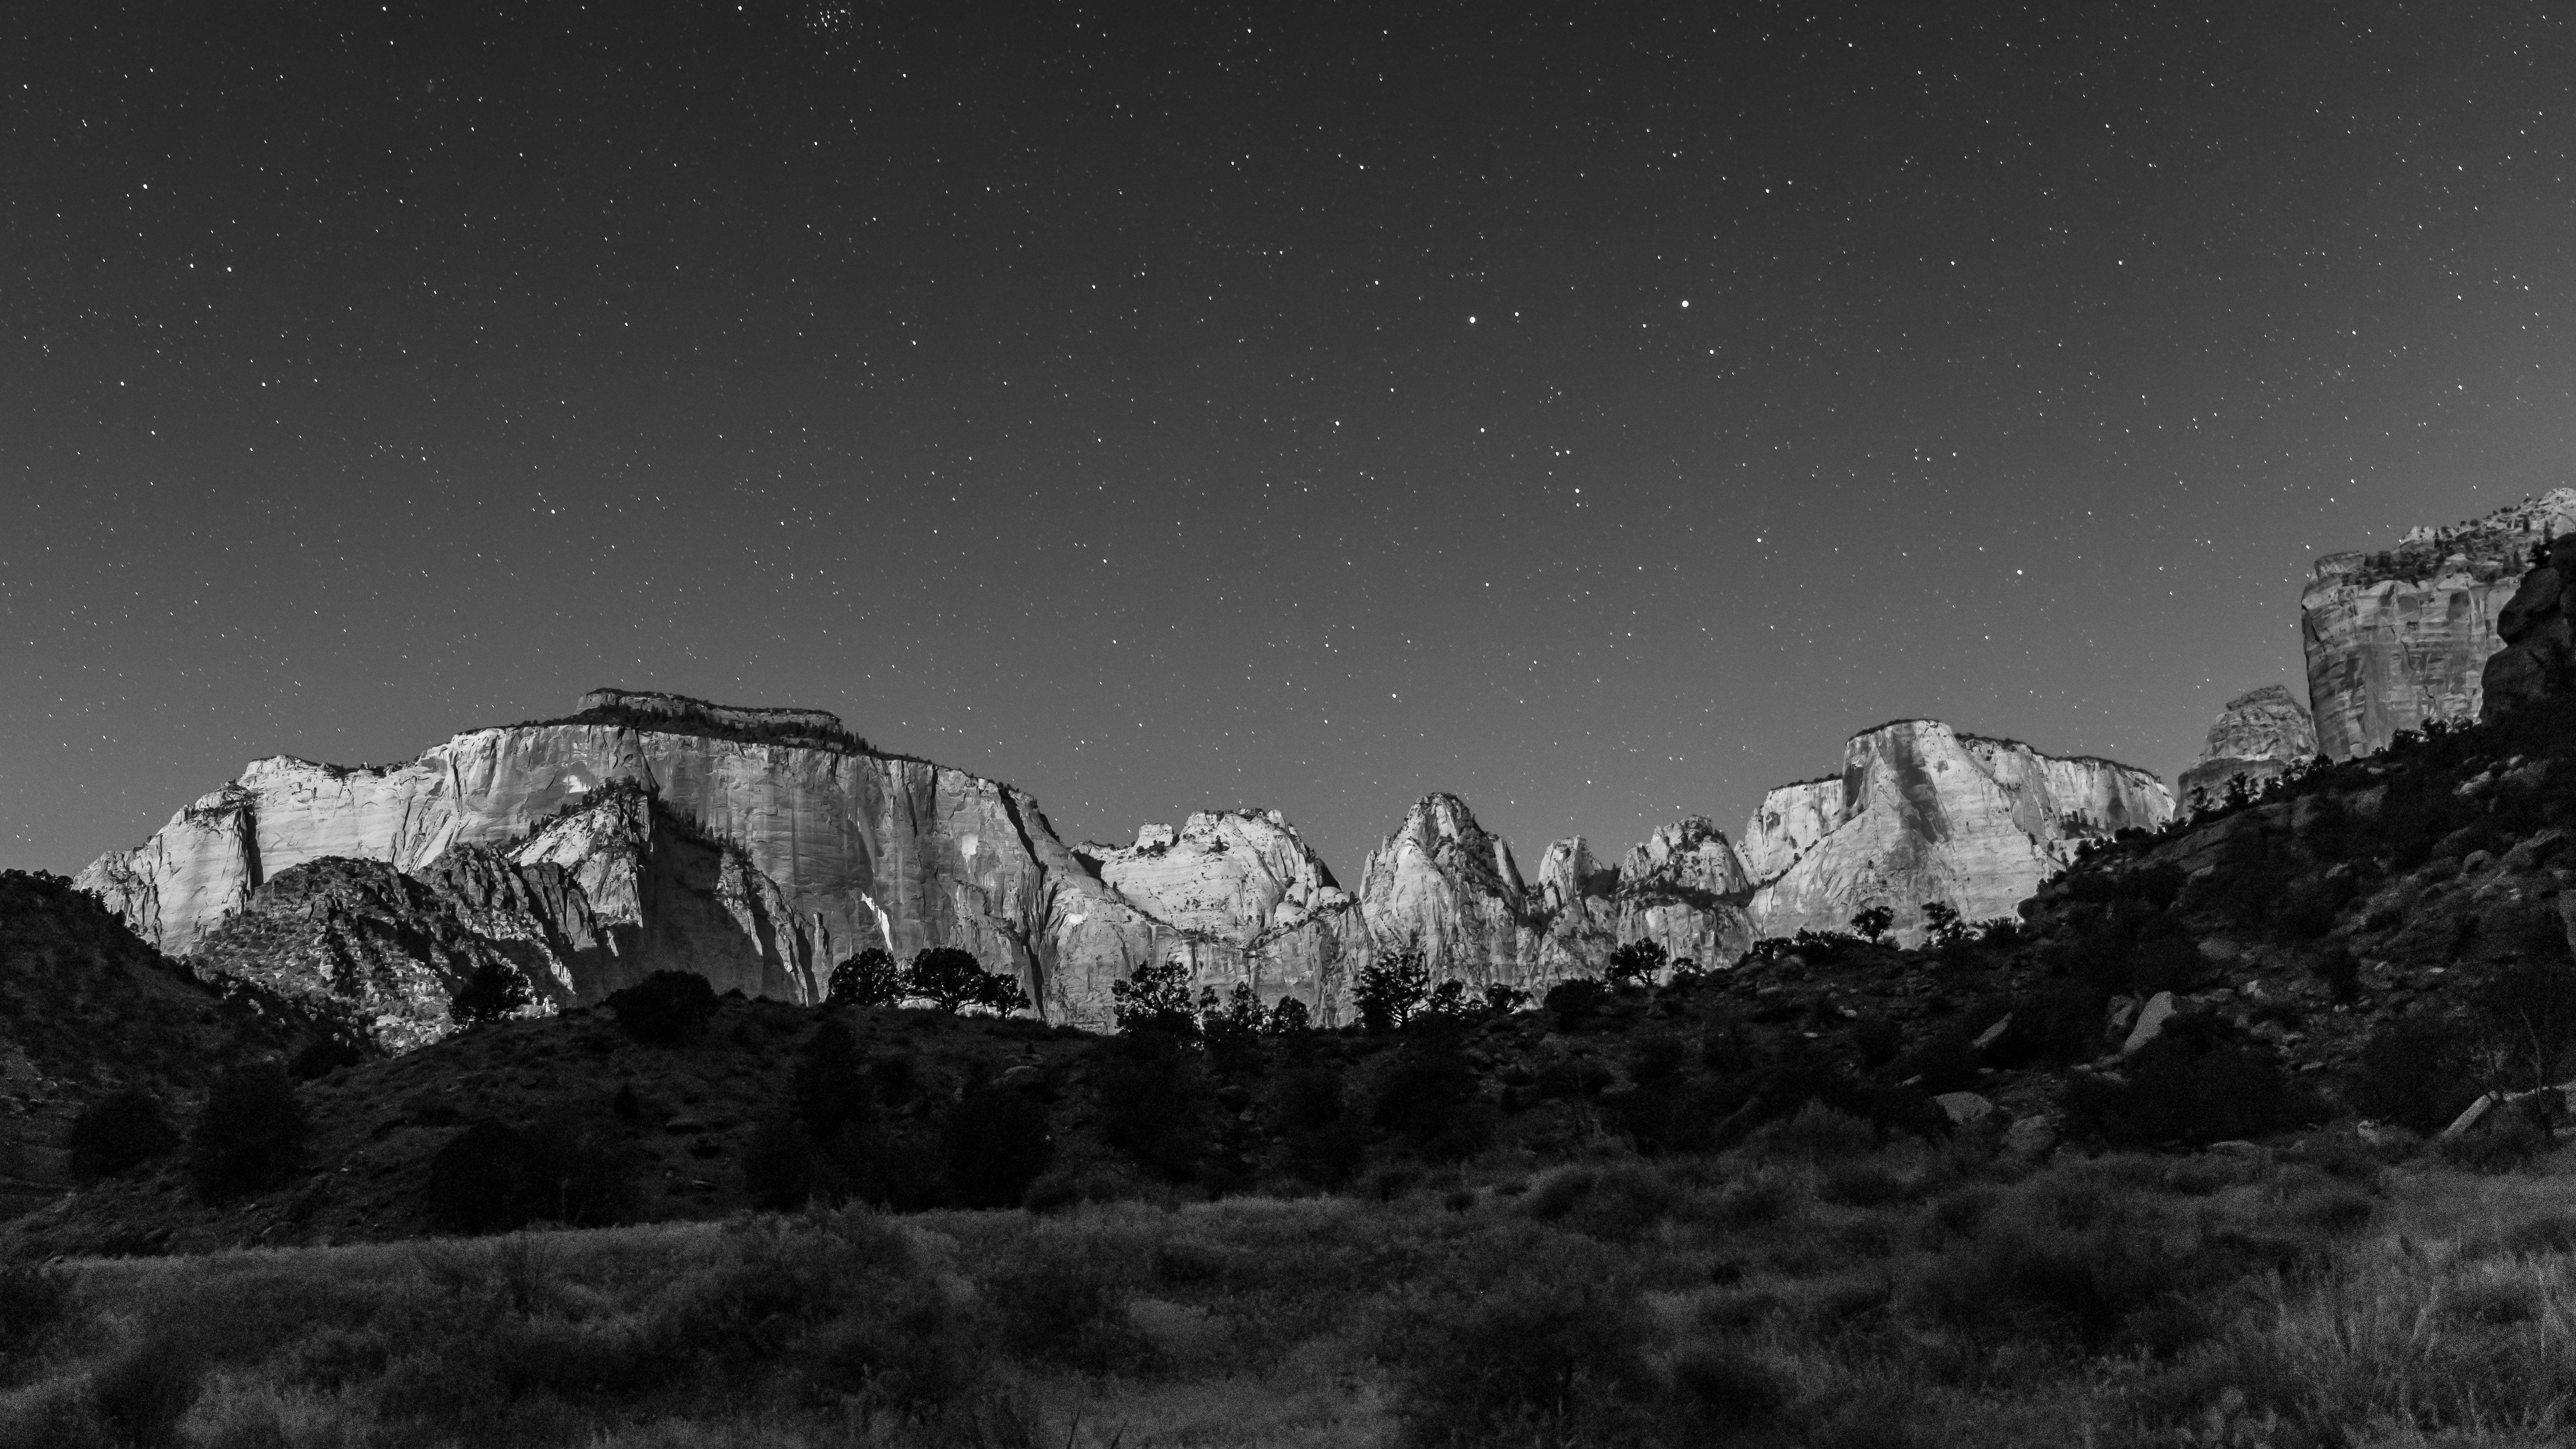 Towers of the virgin black and white photo in zion national park